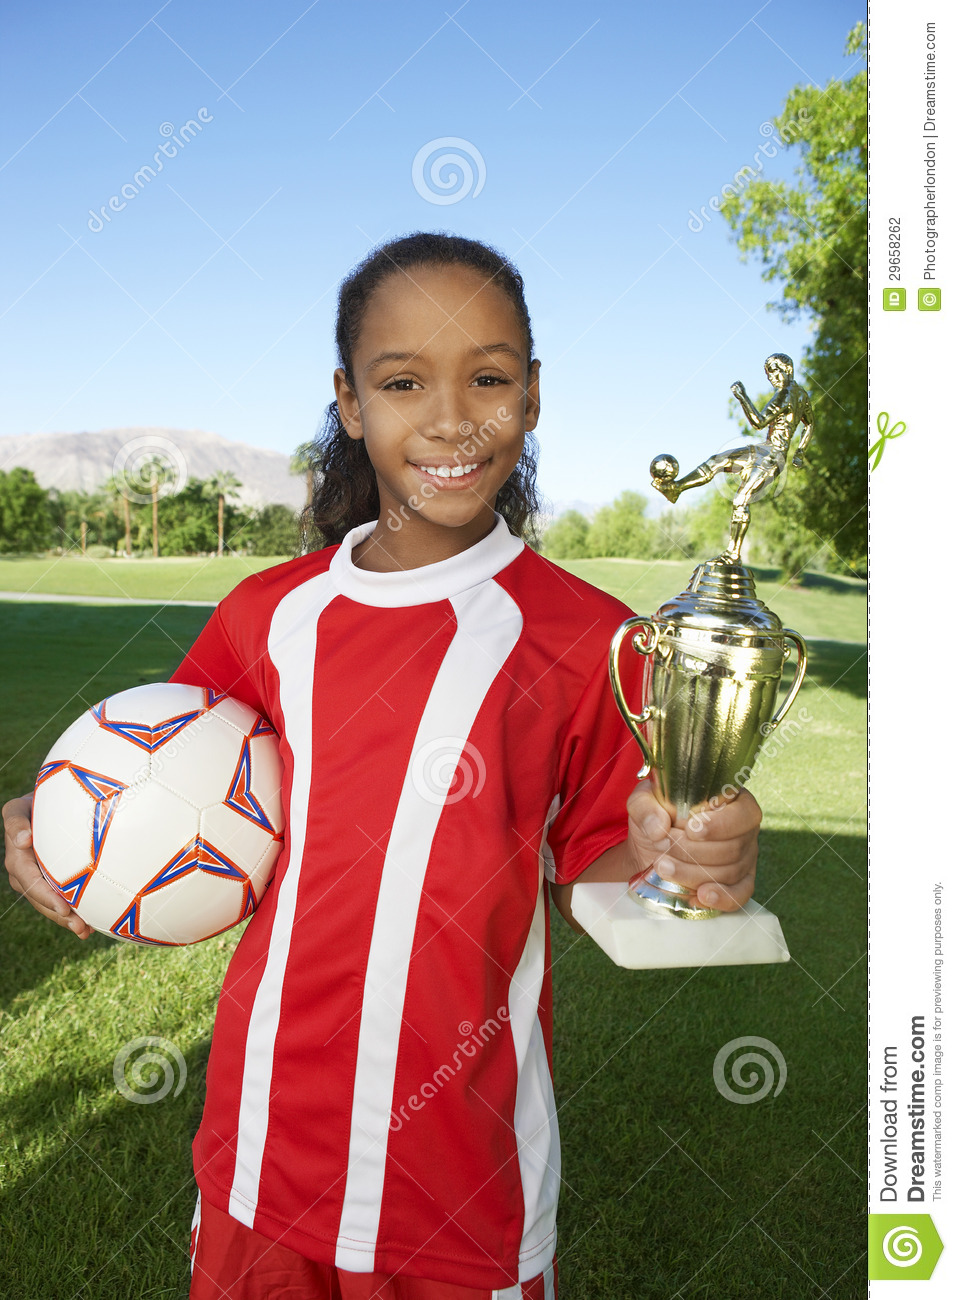 Happy Girl With Trophy